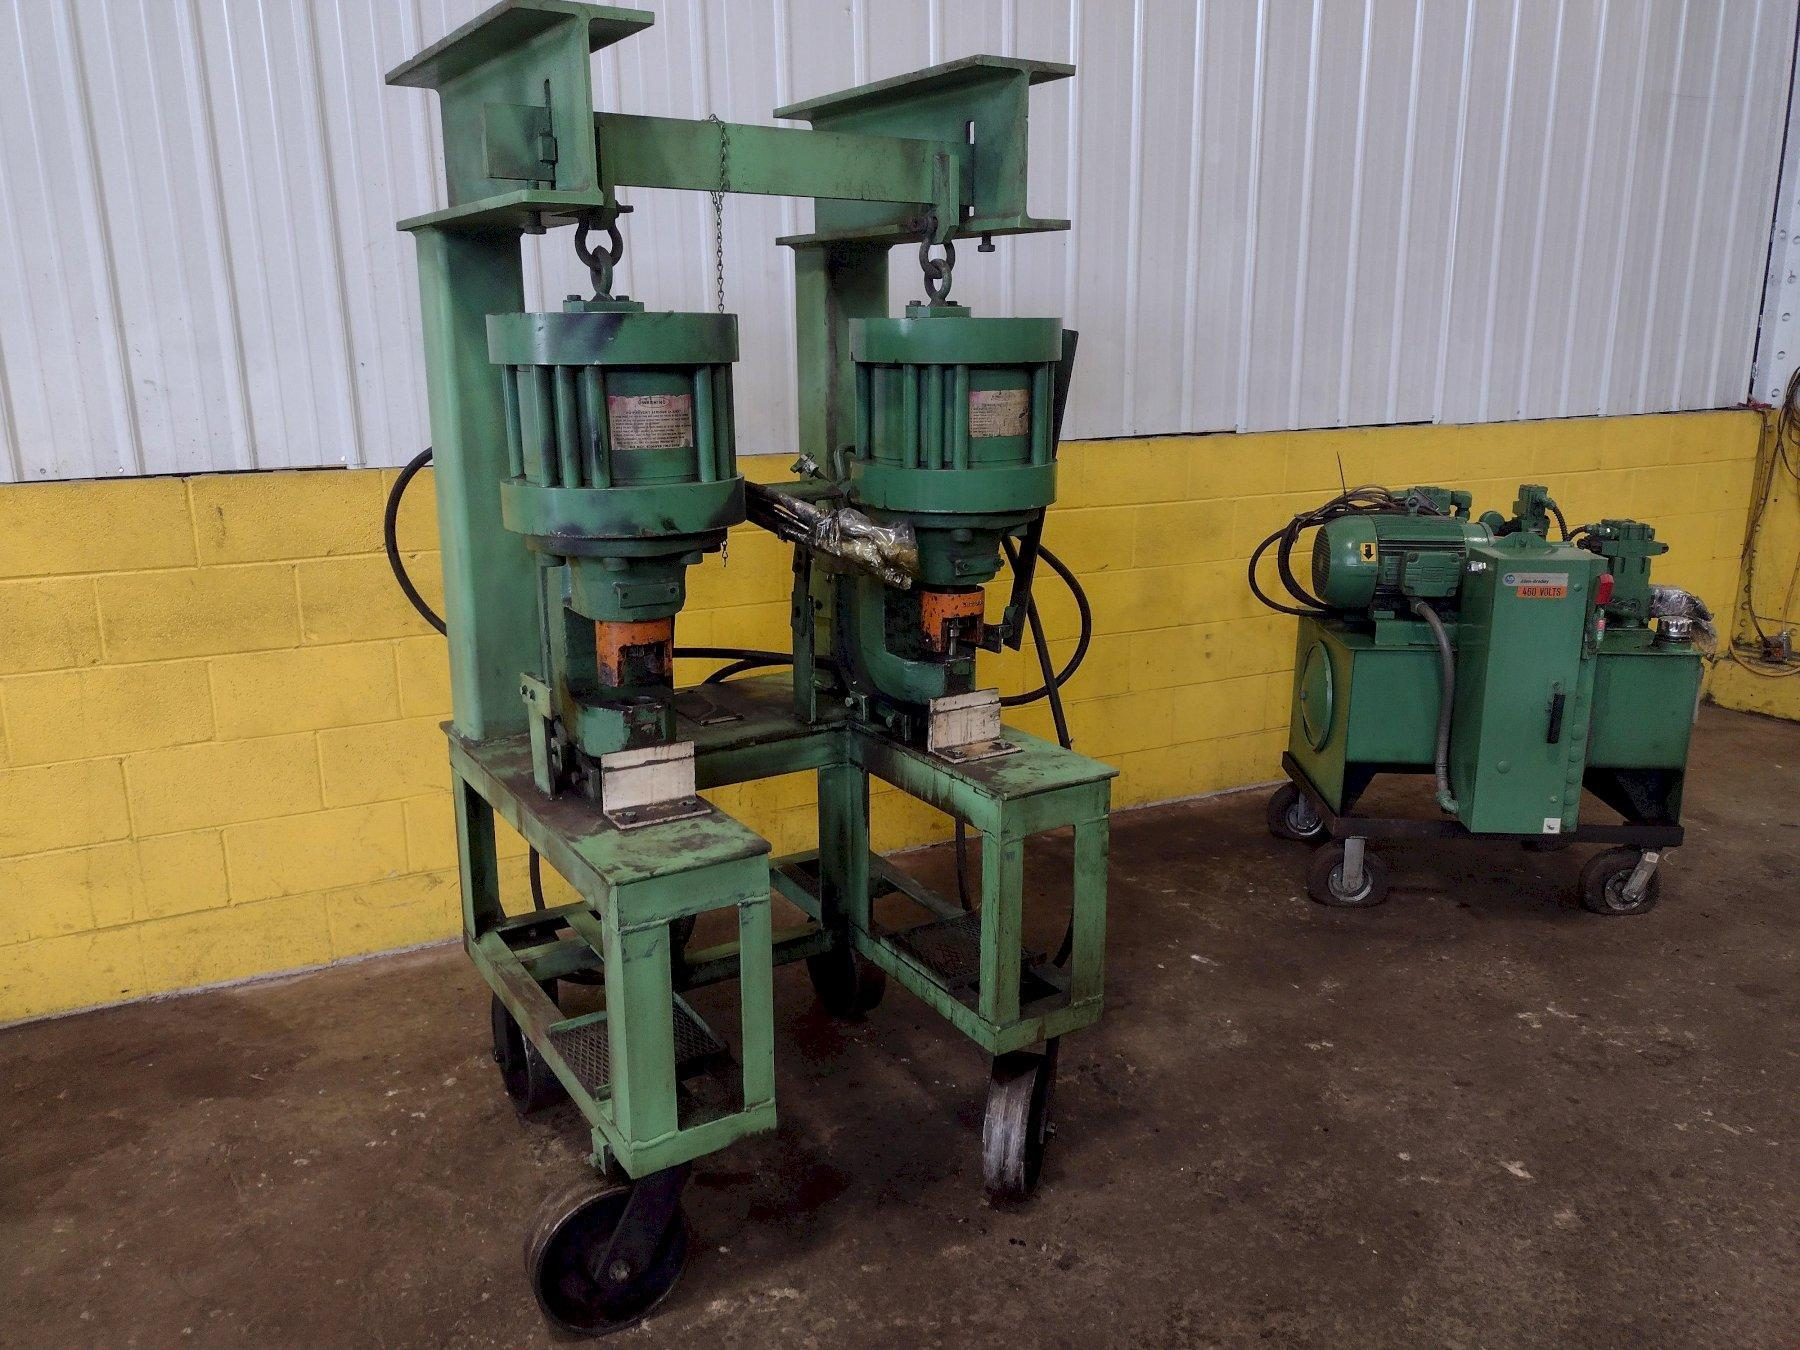 (2) 100 TON PEDDINGHAUS PORTABLE HYDRAULIC PUNCHES WITH HYDRAULIC UNIT: STOCK #15152